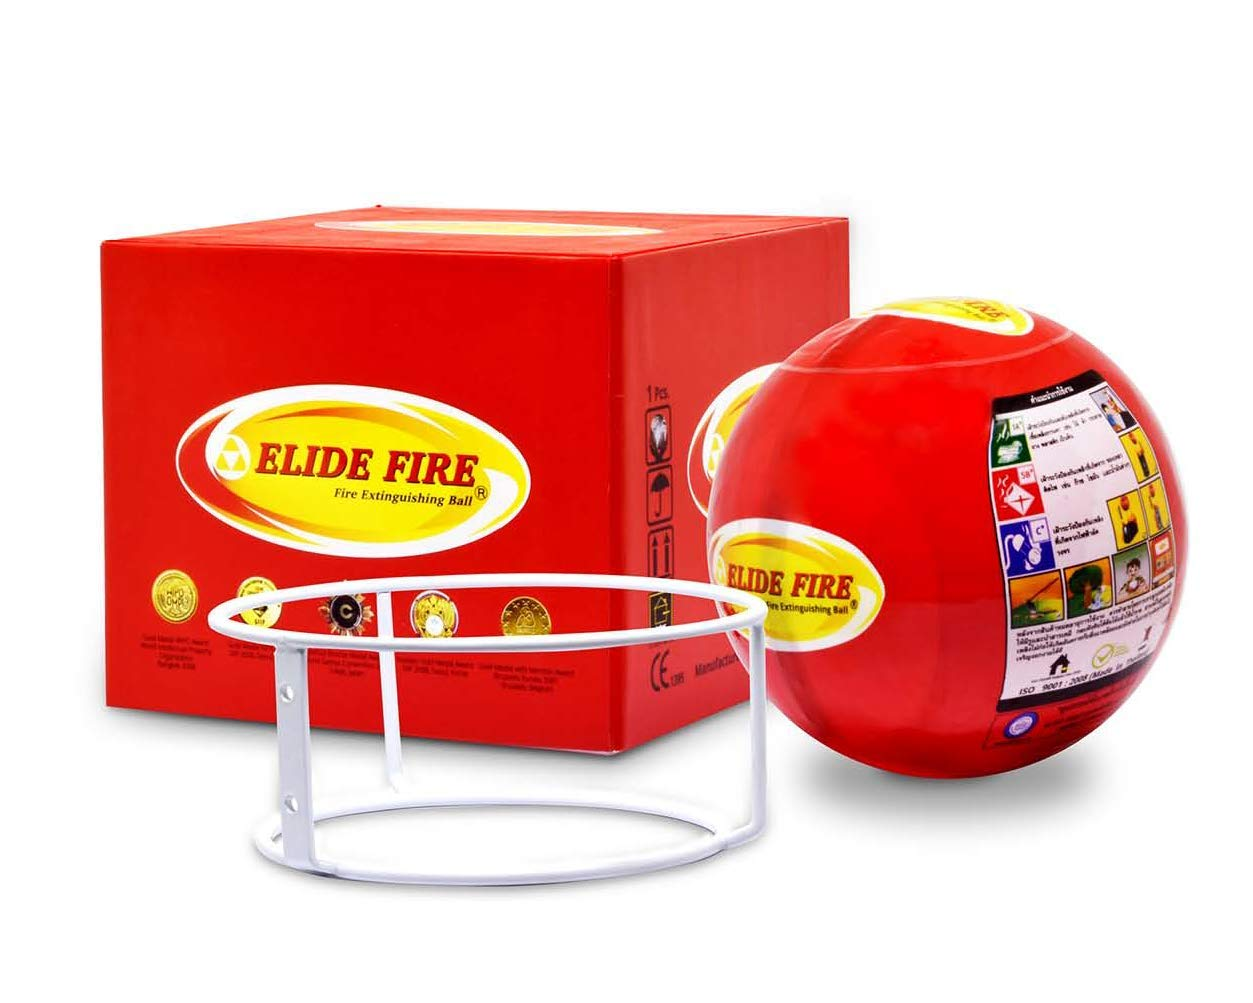 Elide Fire Ball, Self Activation Fire Extinguisher, 2018 New Version , Boat Extinguisher, Car Extinguisher, Fire Safety Product, Elide, 5 Year warranty by ELIDE FIRE